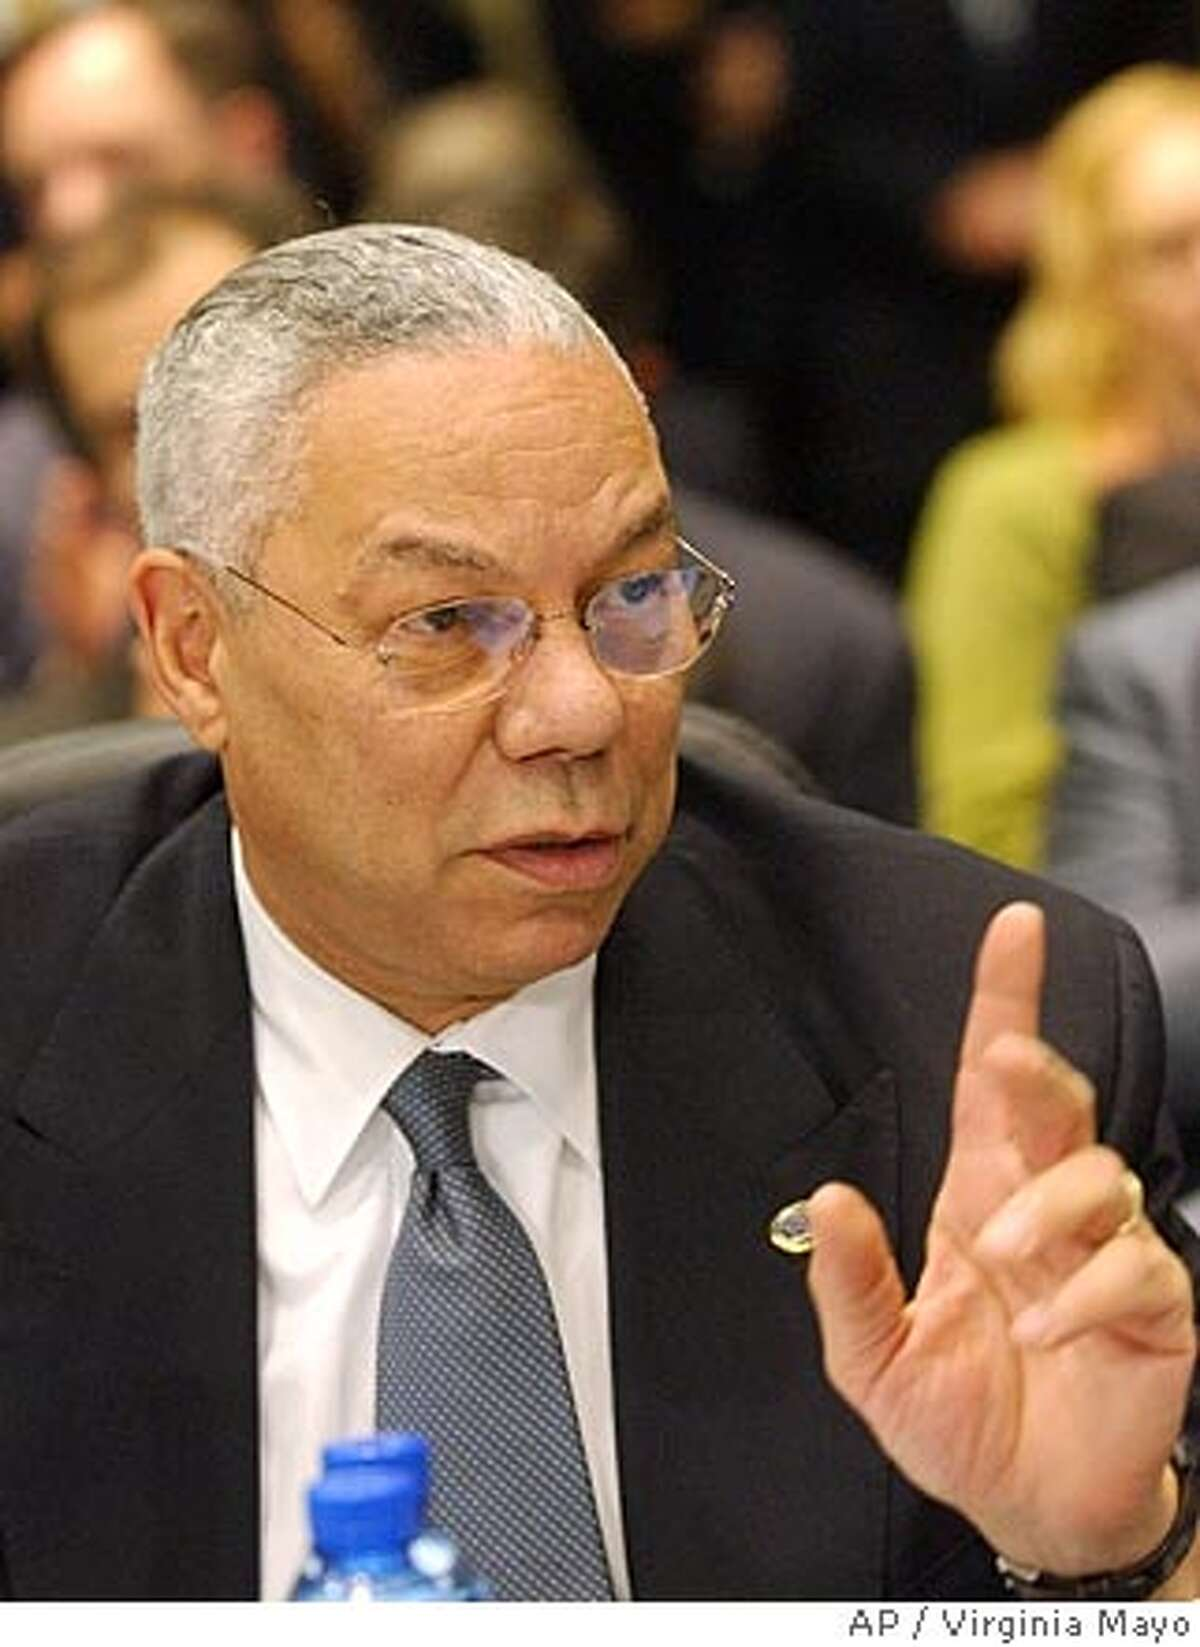 U.S. Secretary of State Colin Powell gestures during a meeting of the Organization of Security and Cooperation in Europe (OSCE) at the Palace of Culture in Sofia, Bulgaria, Tuesday Dec. 7, 2004. Powell rejected on Tuesday Russian charges the West is engaging in political manipulation to expand its influence in Ukraine and other former Soviet republics. (AP Photo/Virginia Mayo) Ran on: 12-08-2004 Secretary of State Colin Powell: We remain concerned about developments in Russia. Ran on: 12-08-2004 Colin Powell